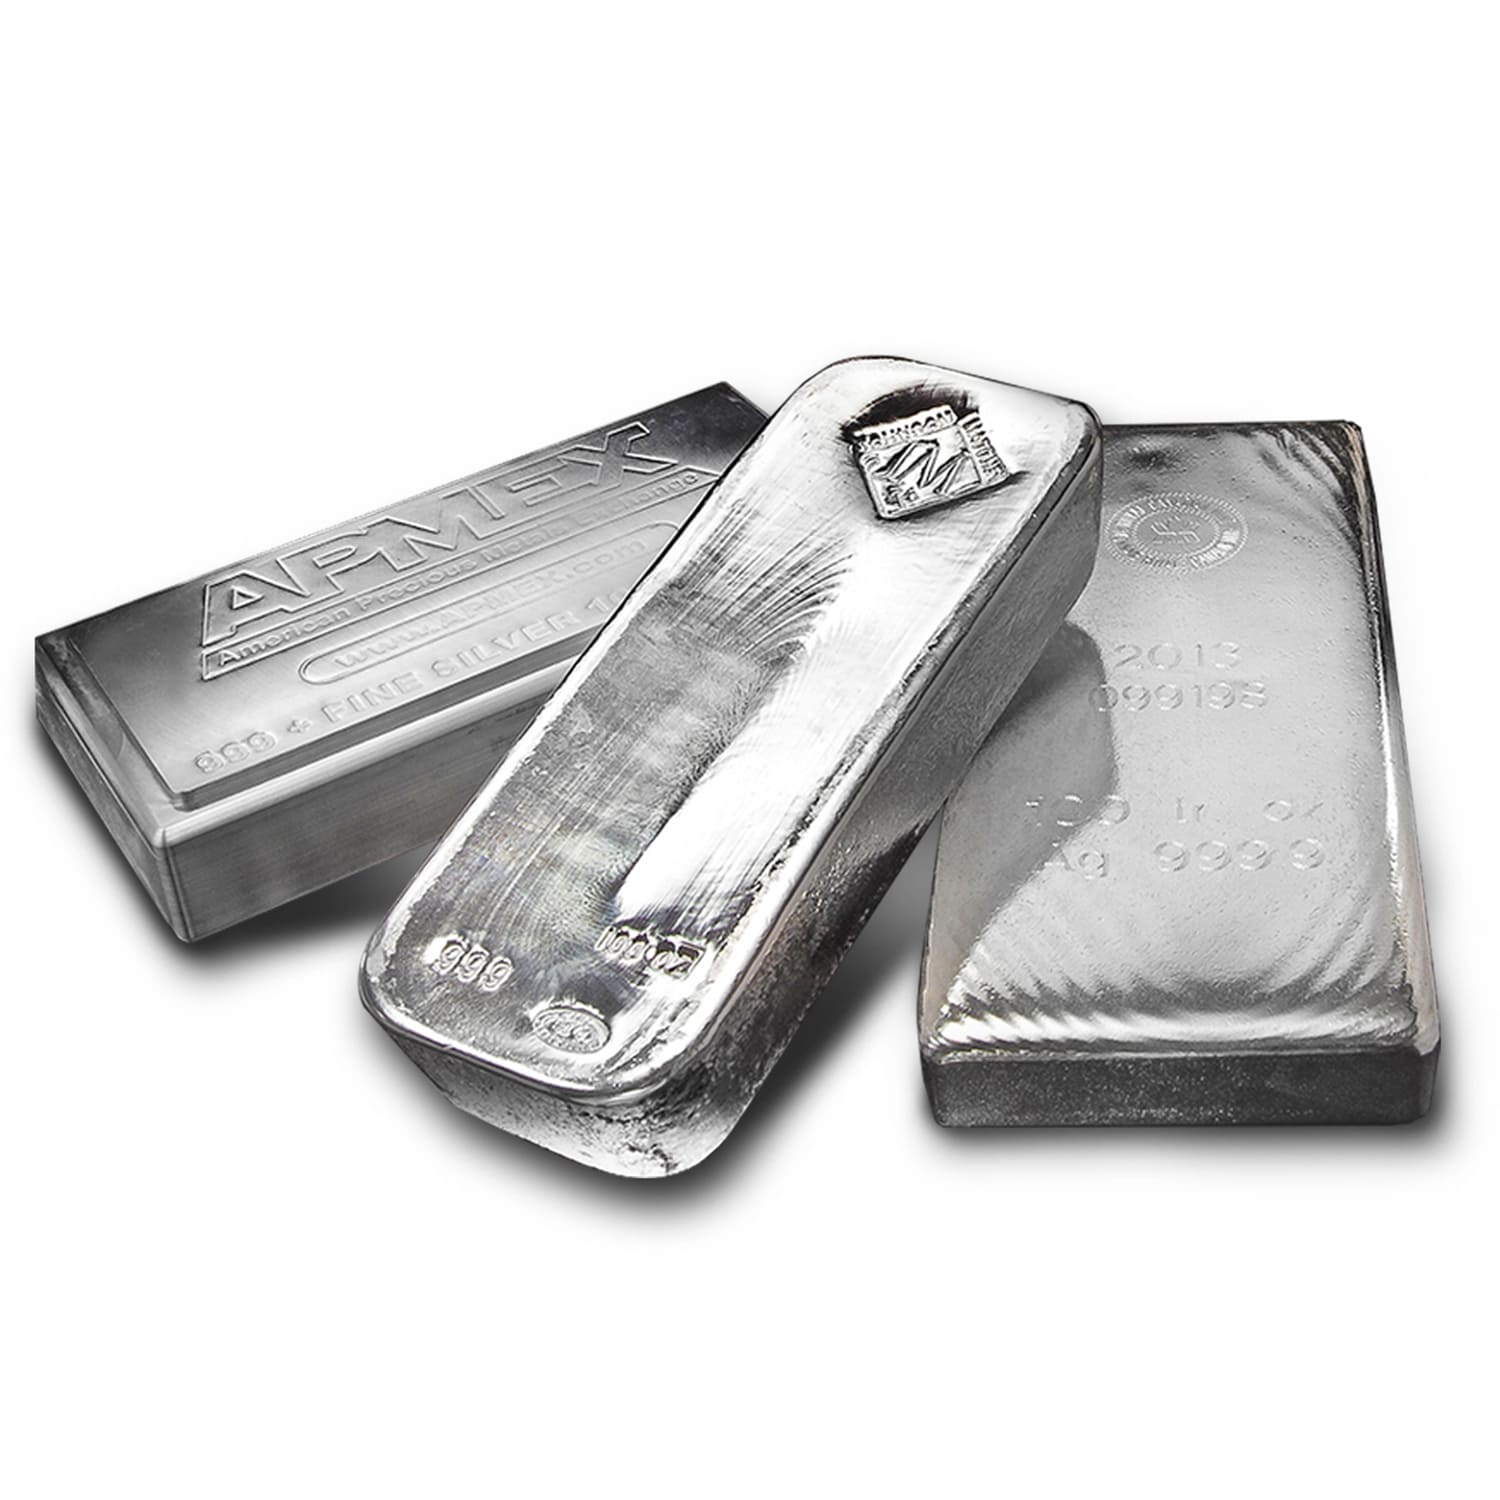 98.20 oz Silver Bars - Secondary Market